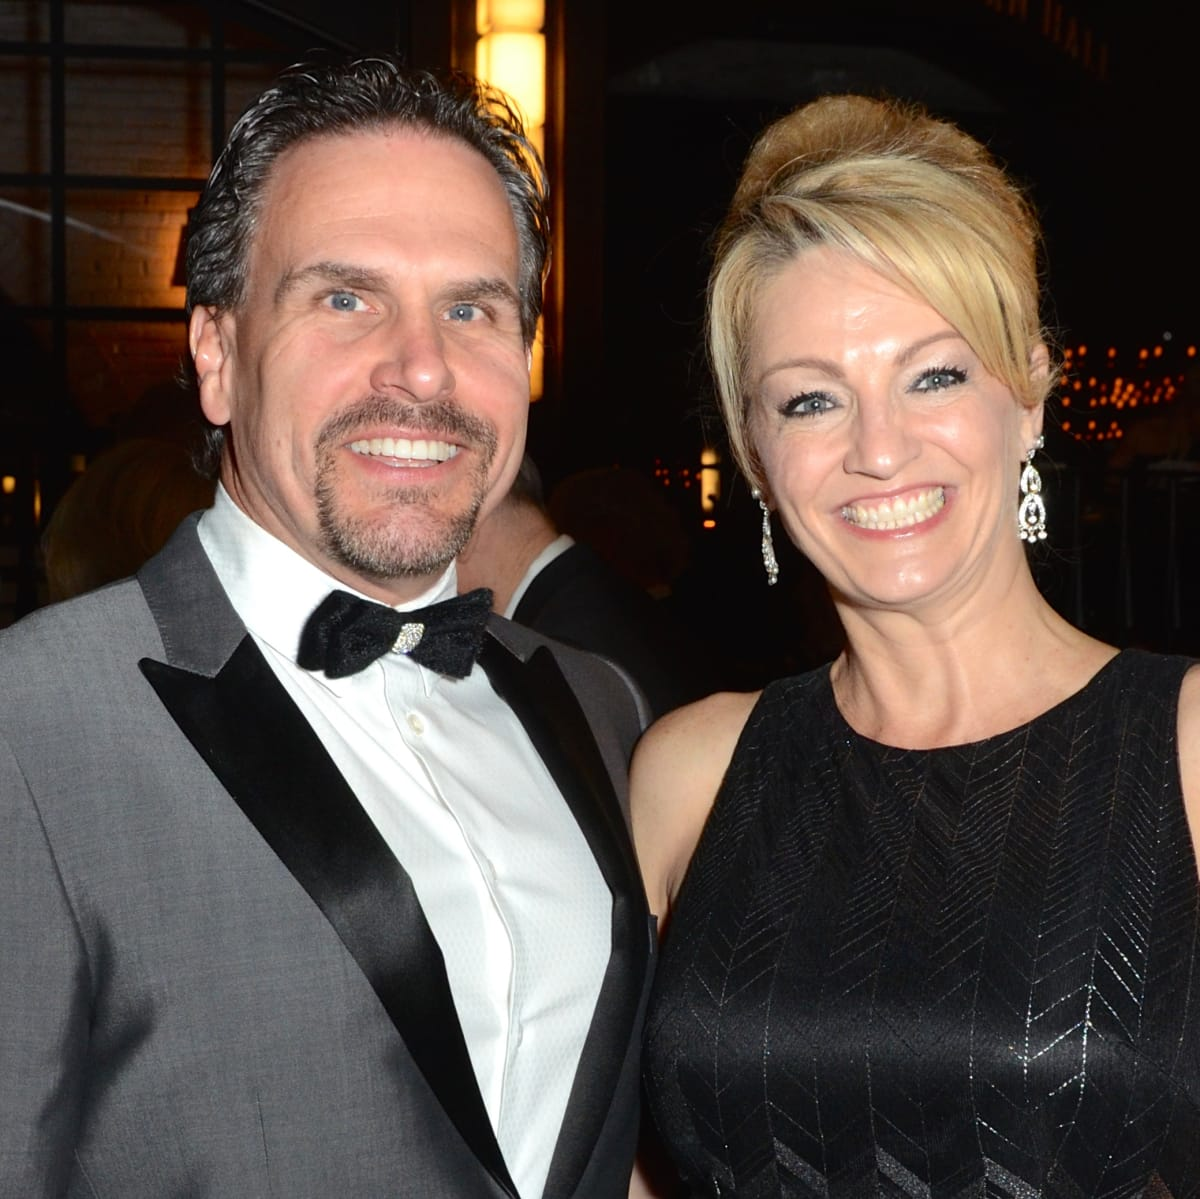 Duke and C.C. Ensel at Stages Gala